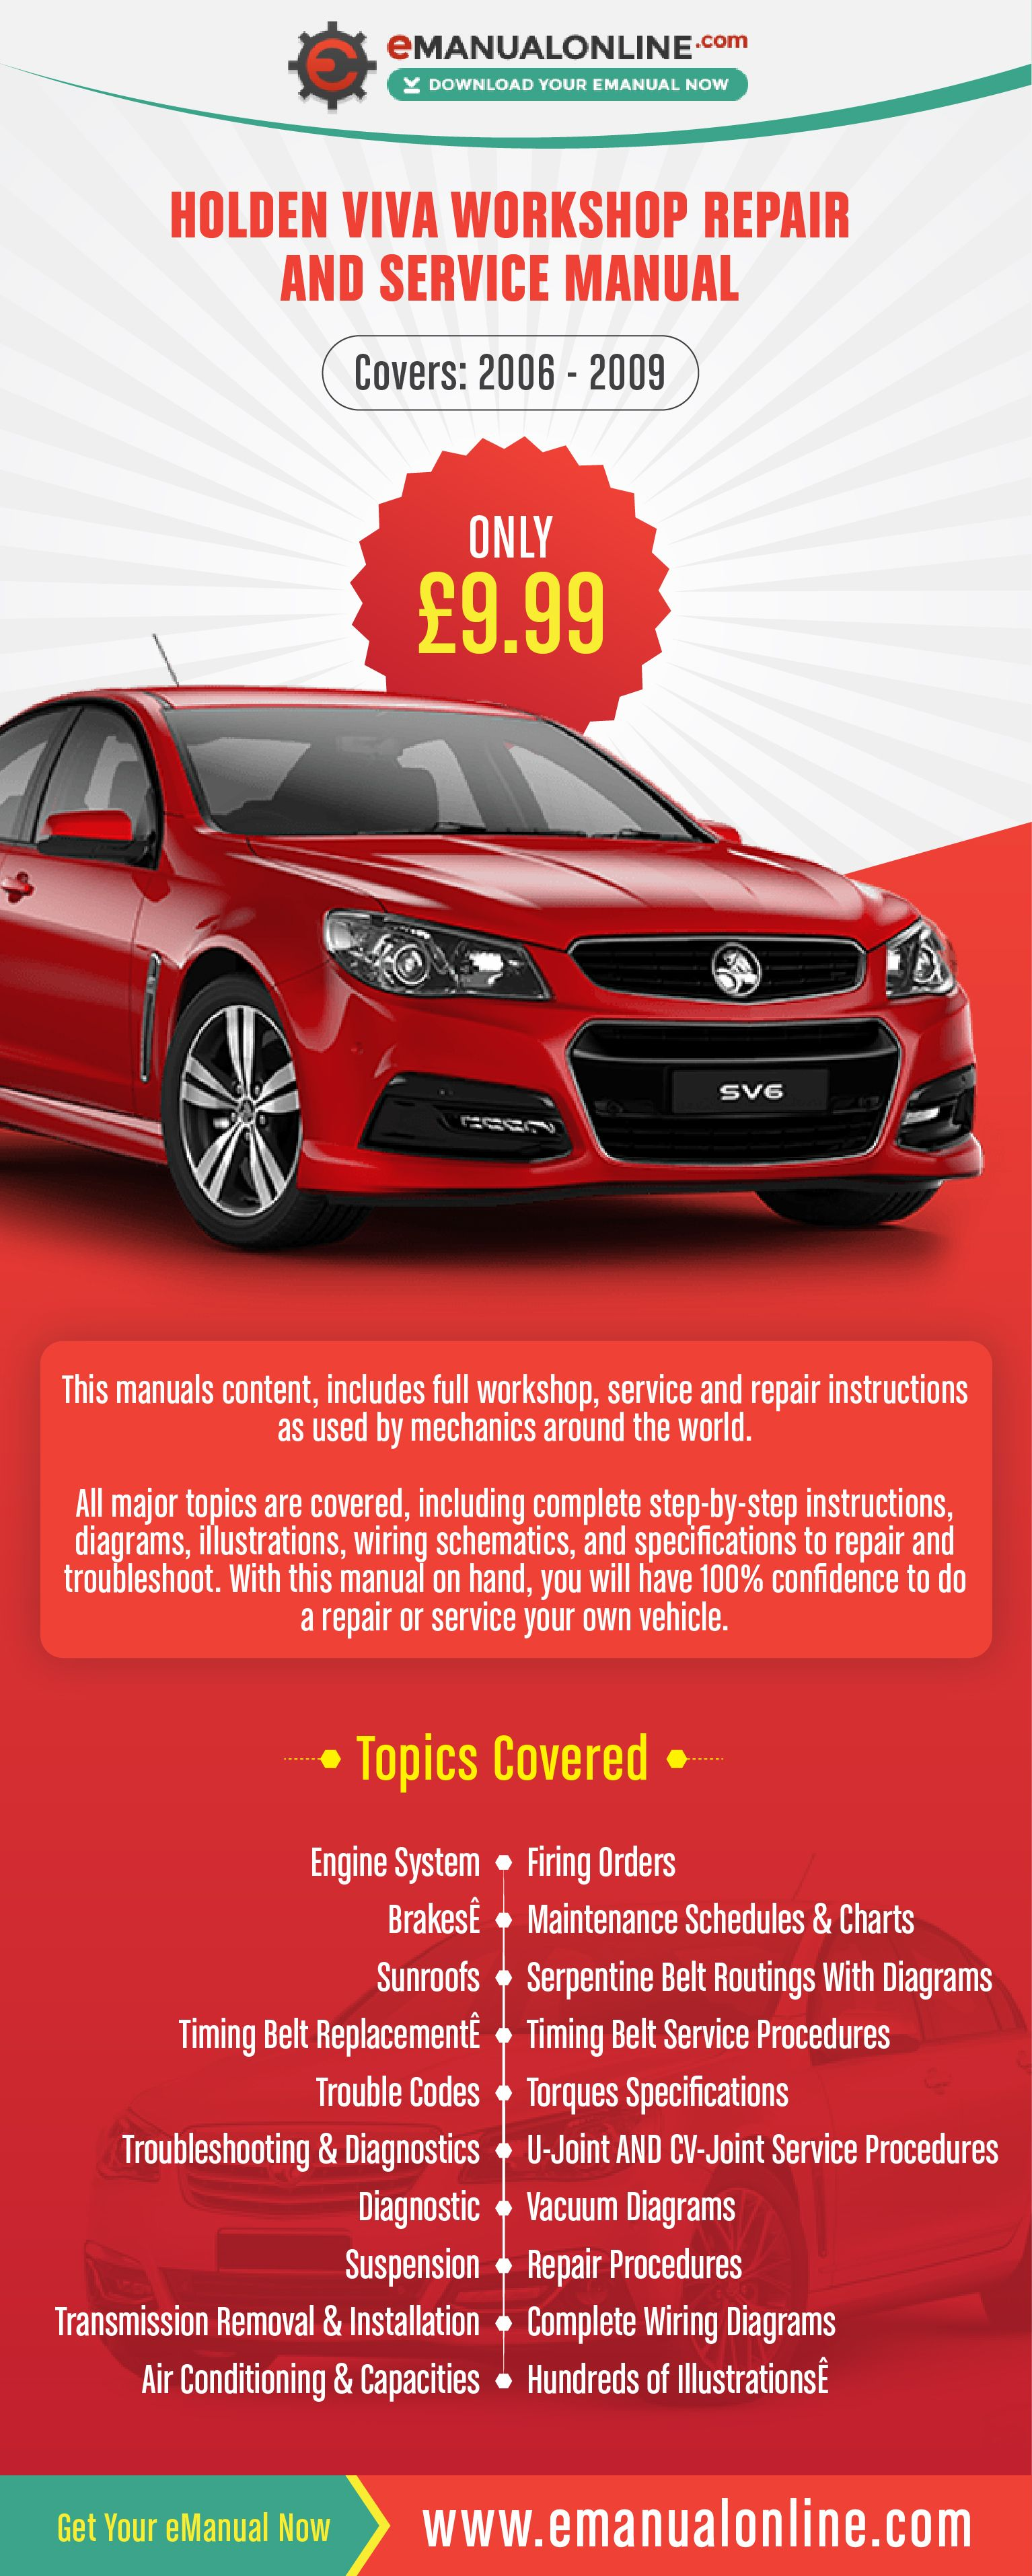 small resolution of holden viva workshop repair and service manual this manuals content includes full workshop service and repair instructions as used by mechanics around the